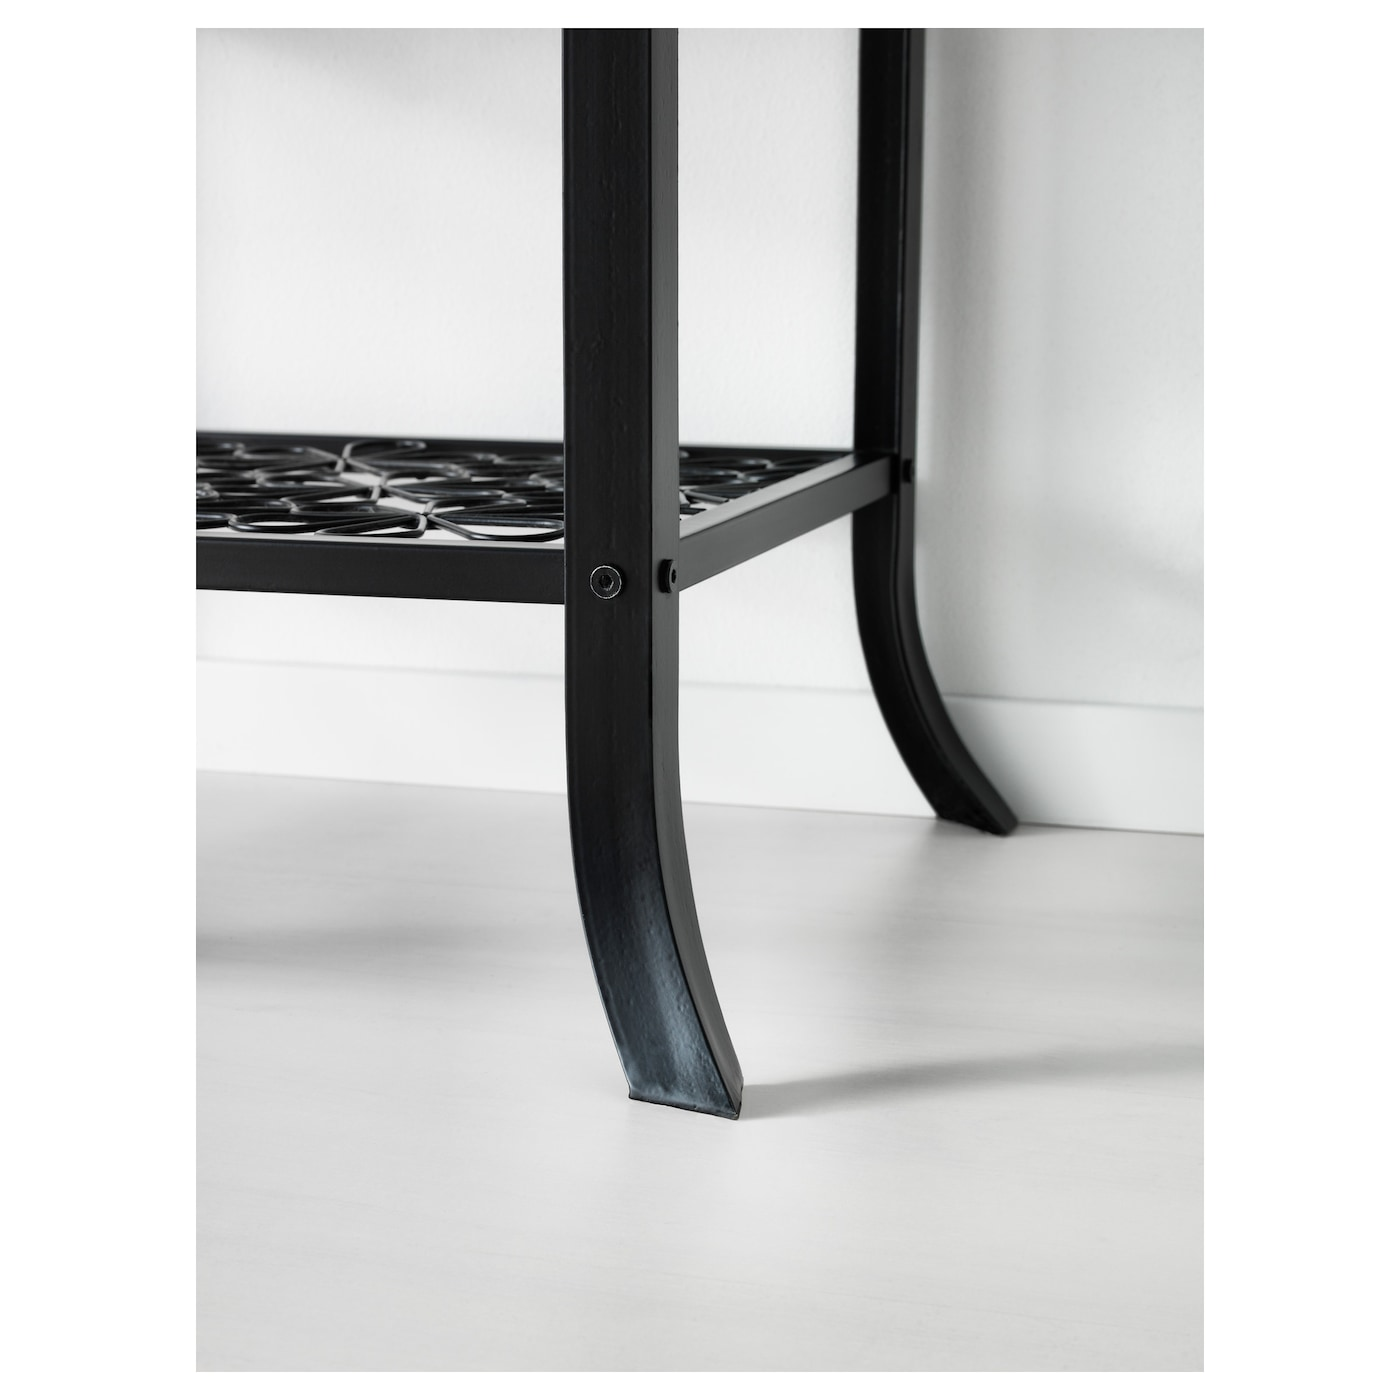 Folding Dinner Table Ikea Extendable Table ~ KLINGSBO Glass door cabinet Black clear glass 45×180 cm  IKEA